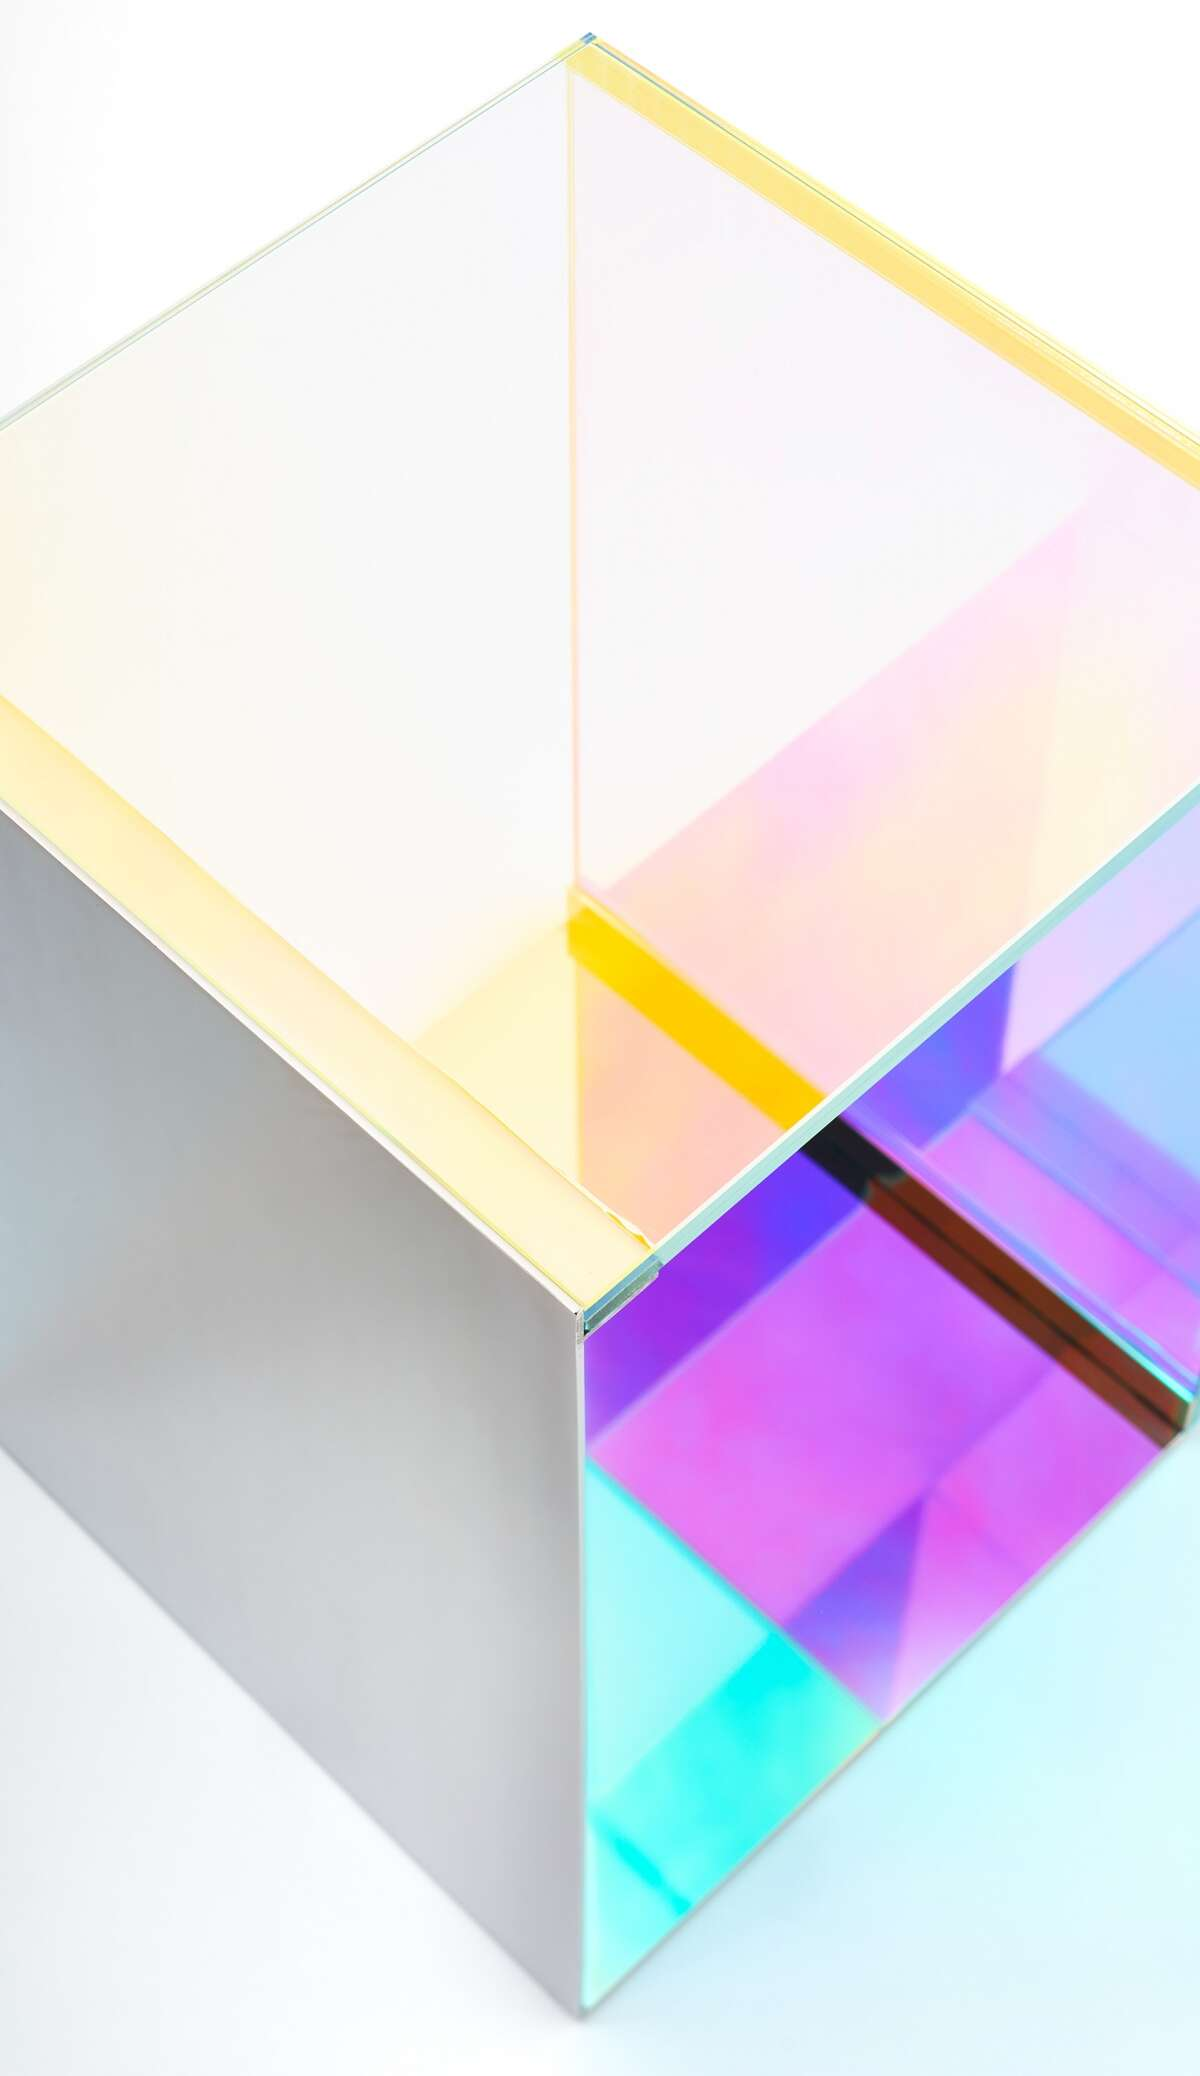 The Dichroic Table from Lauren Rottet's Rottet Collection has won